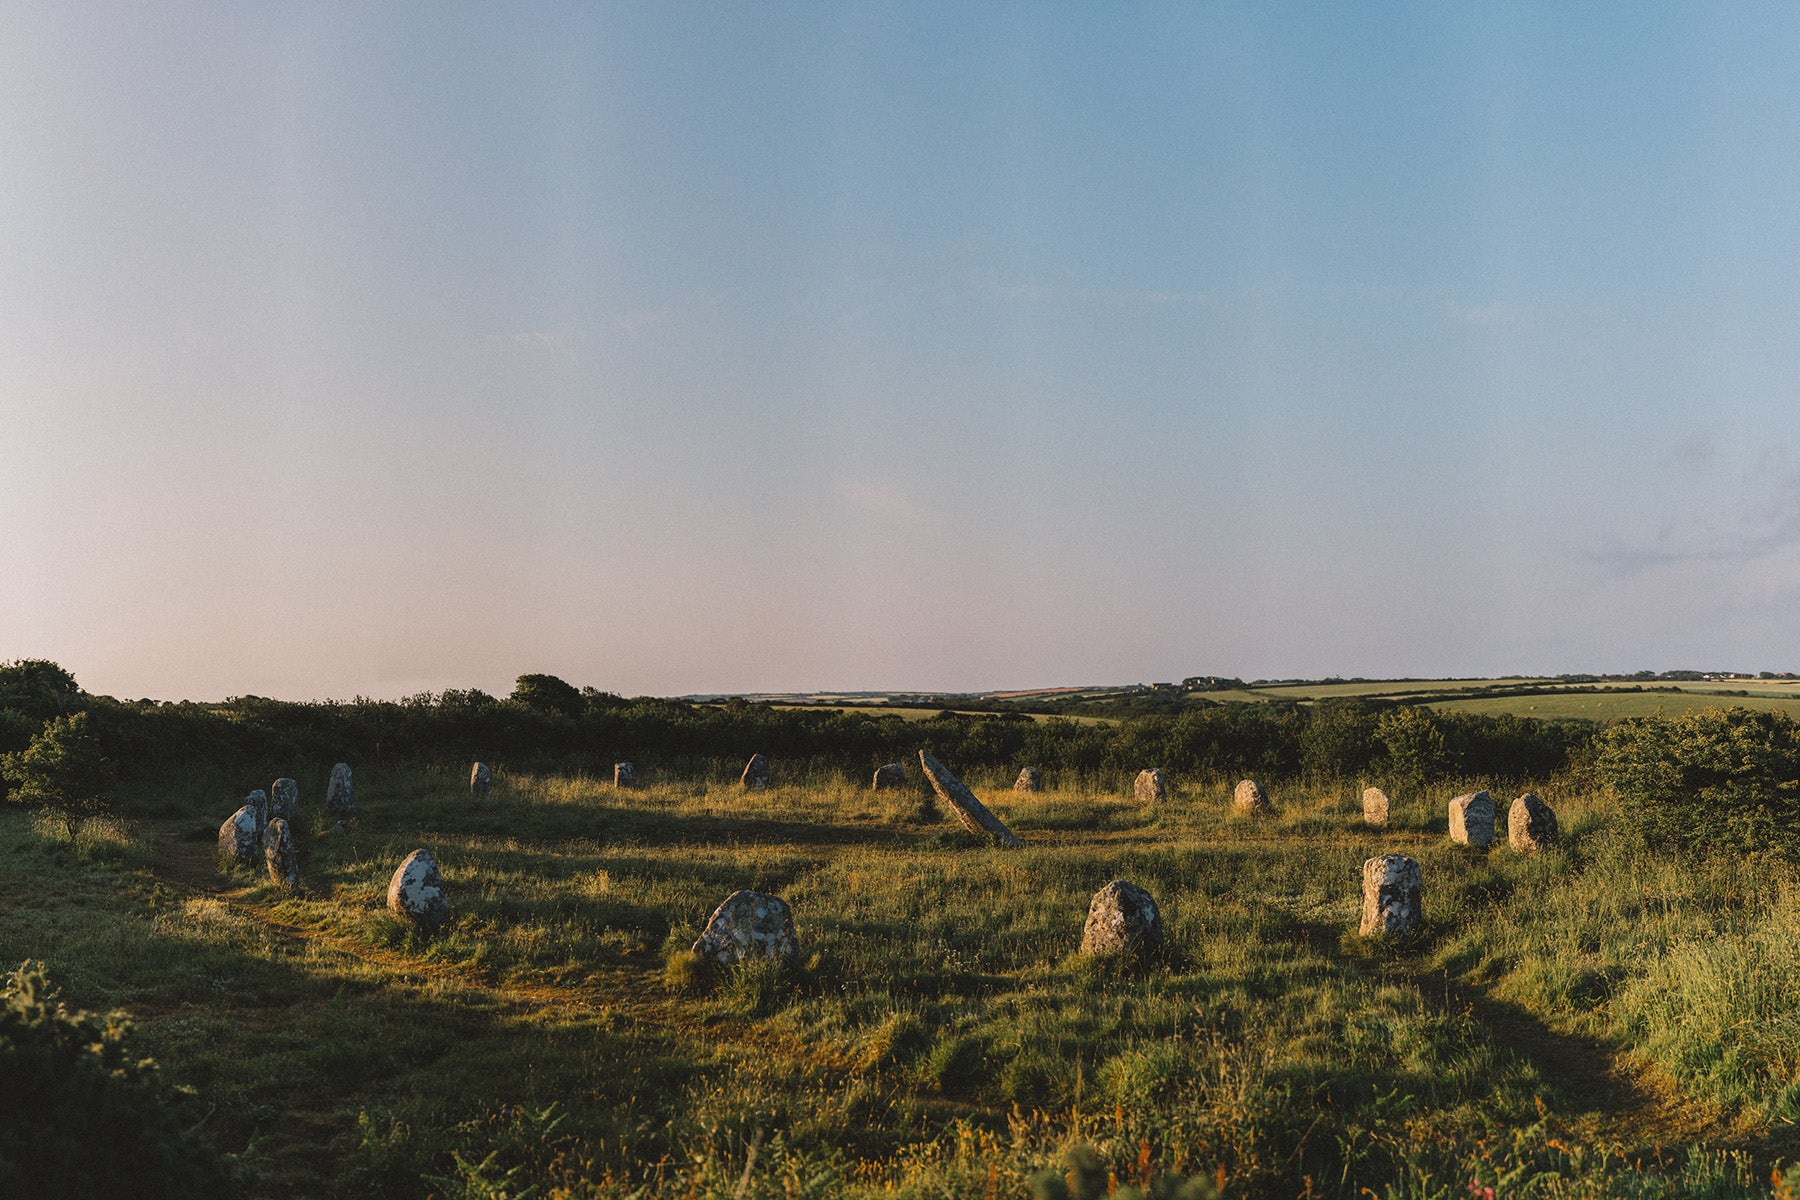 The Boscawen-ûn stone circle welcomes the morning light in west Penwith